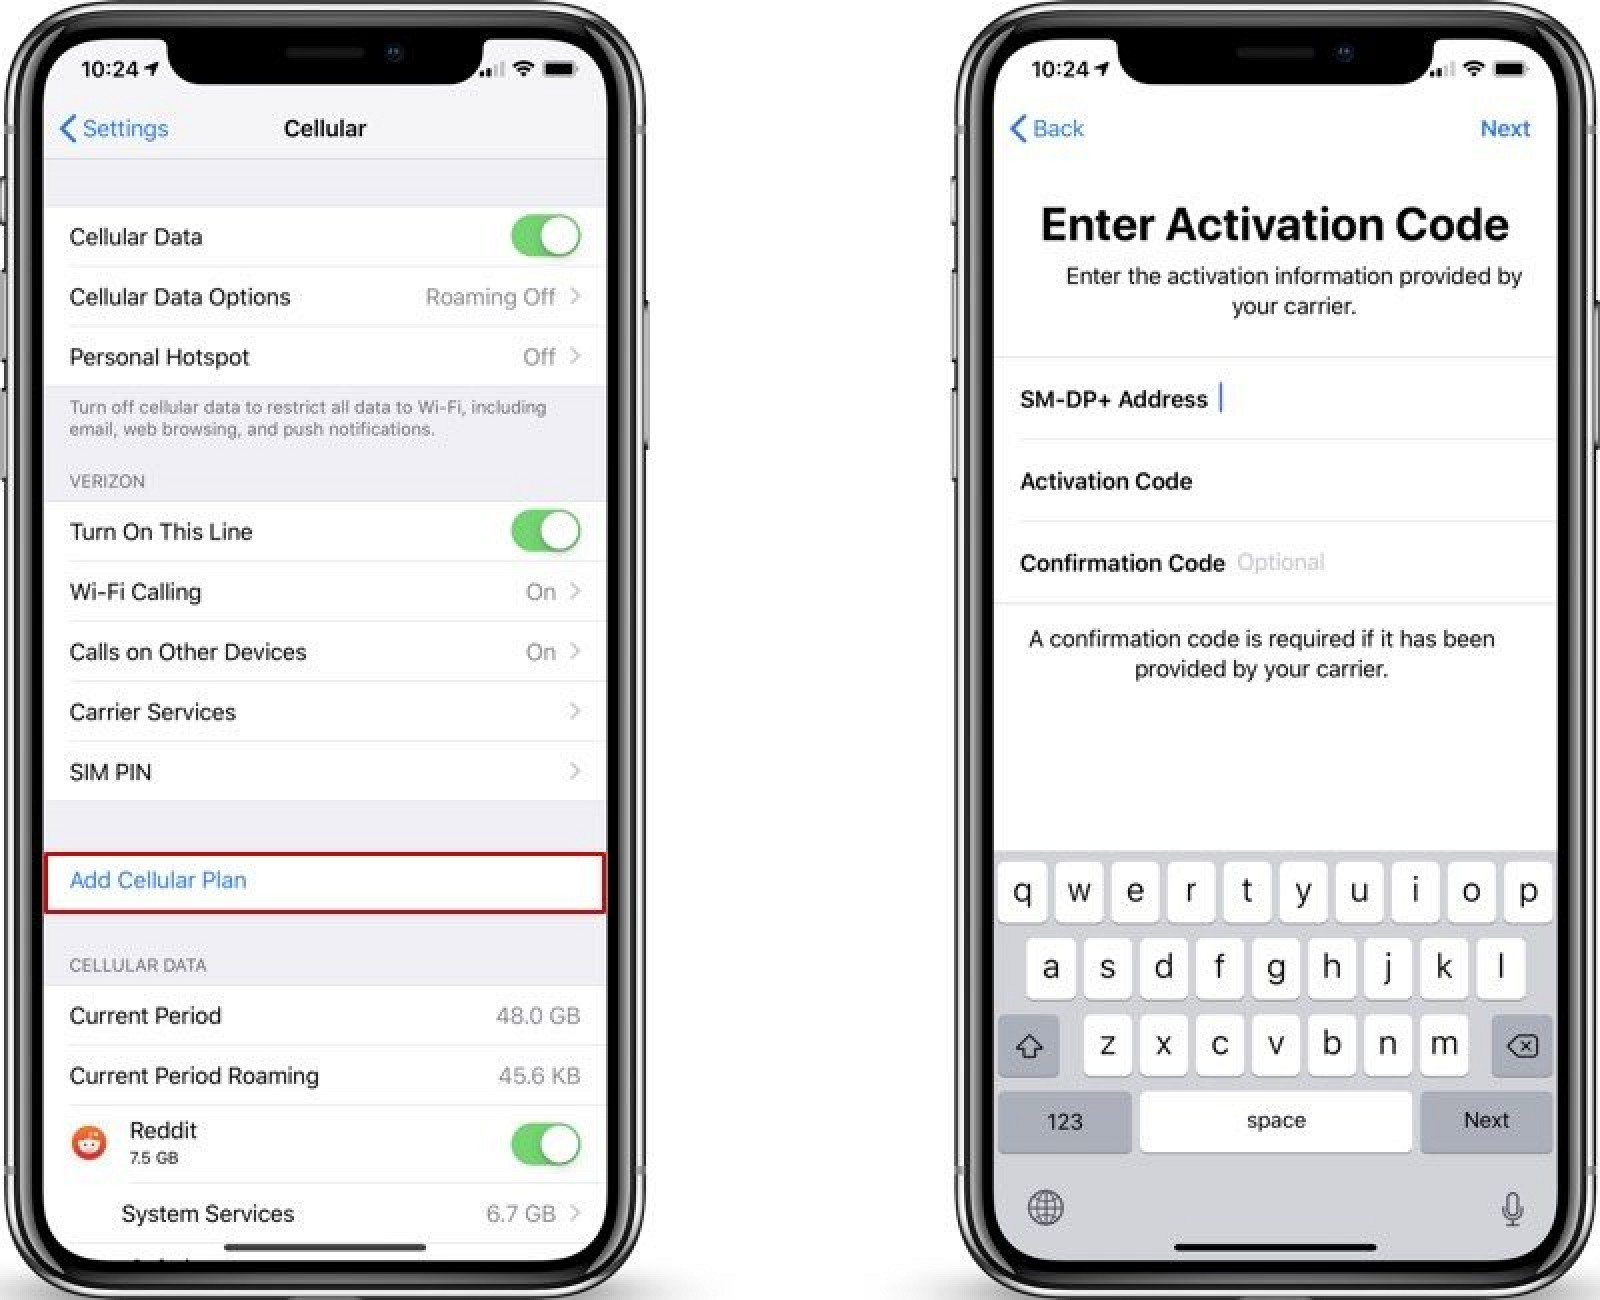 apple application support is required